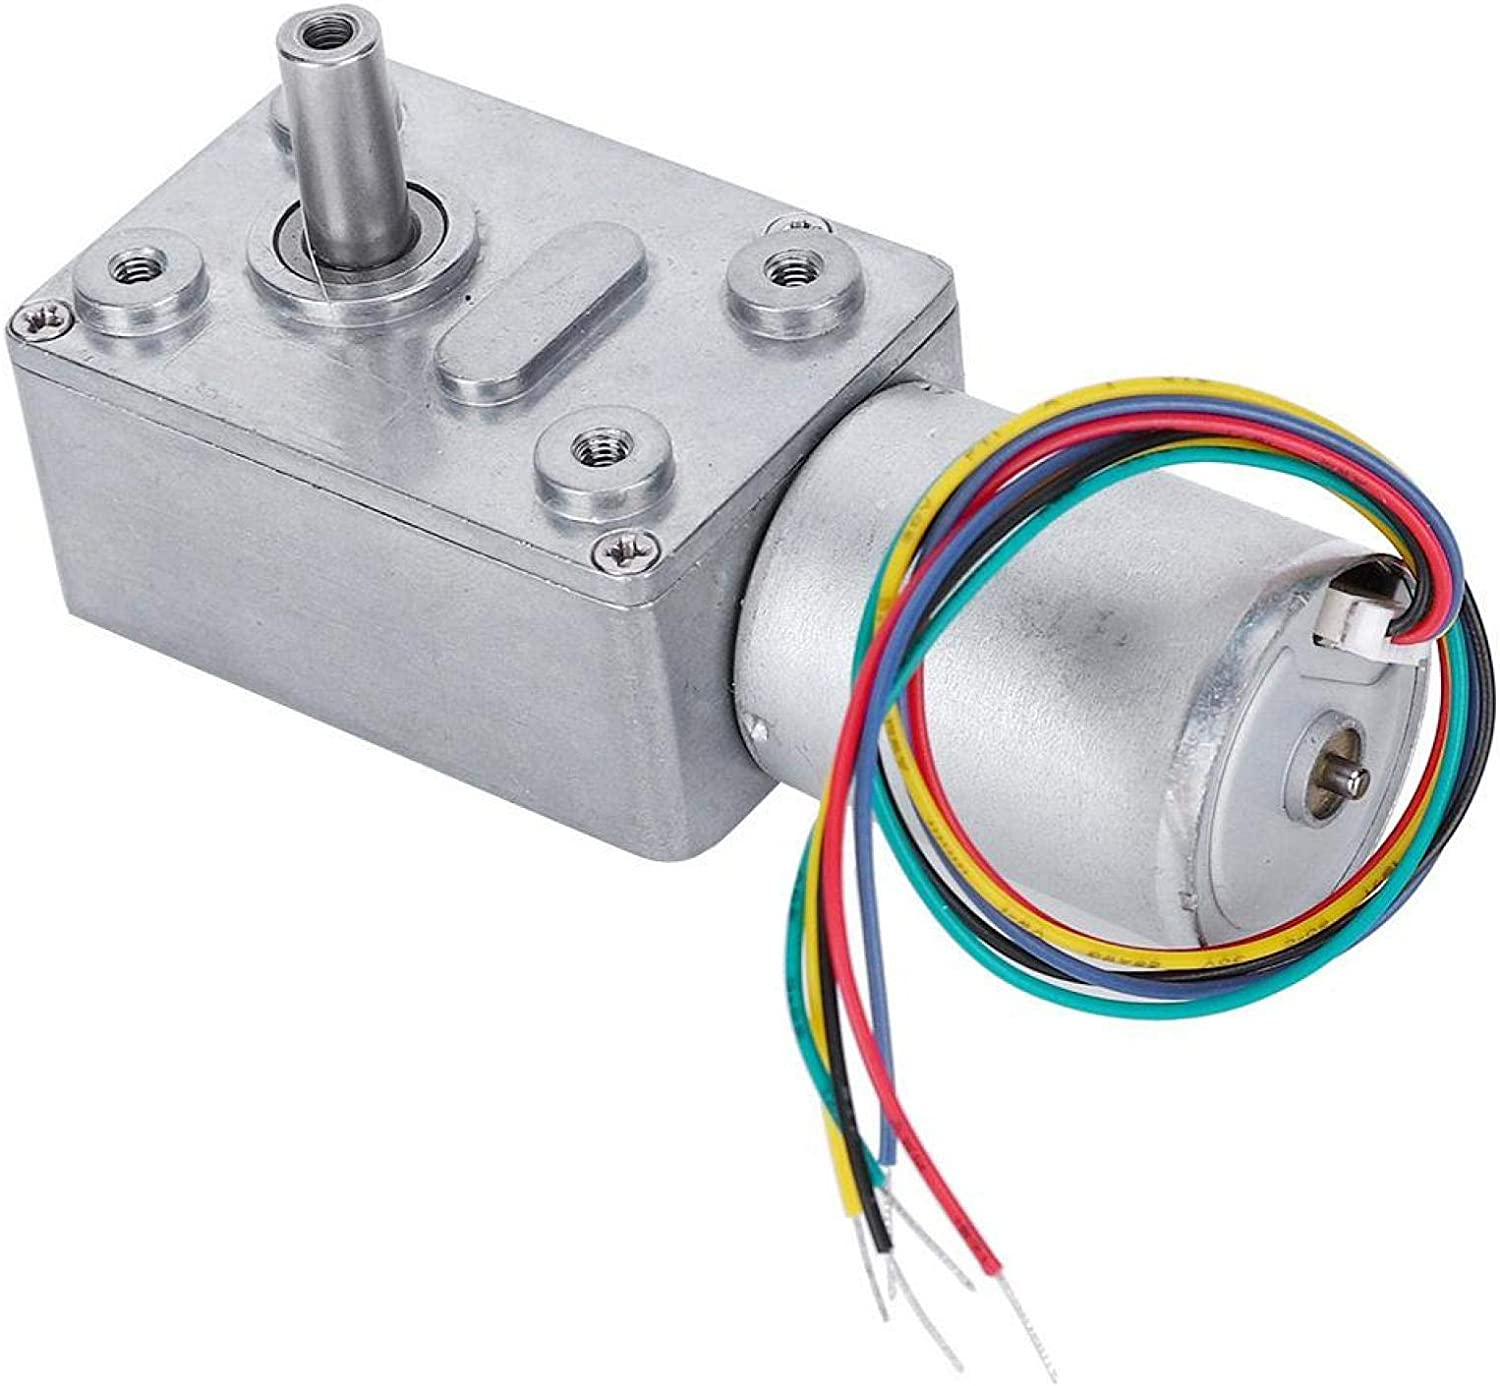 Motor Austin Mall Reversible Easy Be super welcome To Use Electri DC Self-Locking for